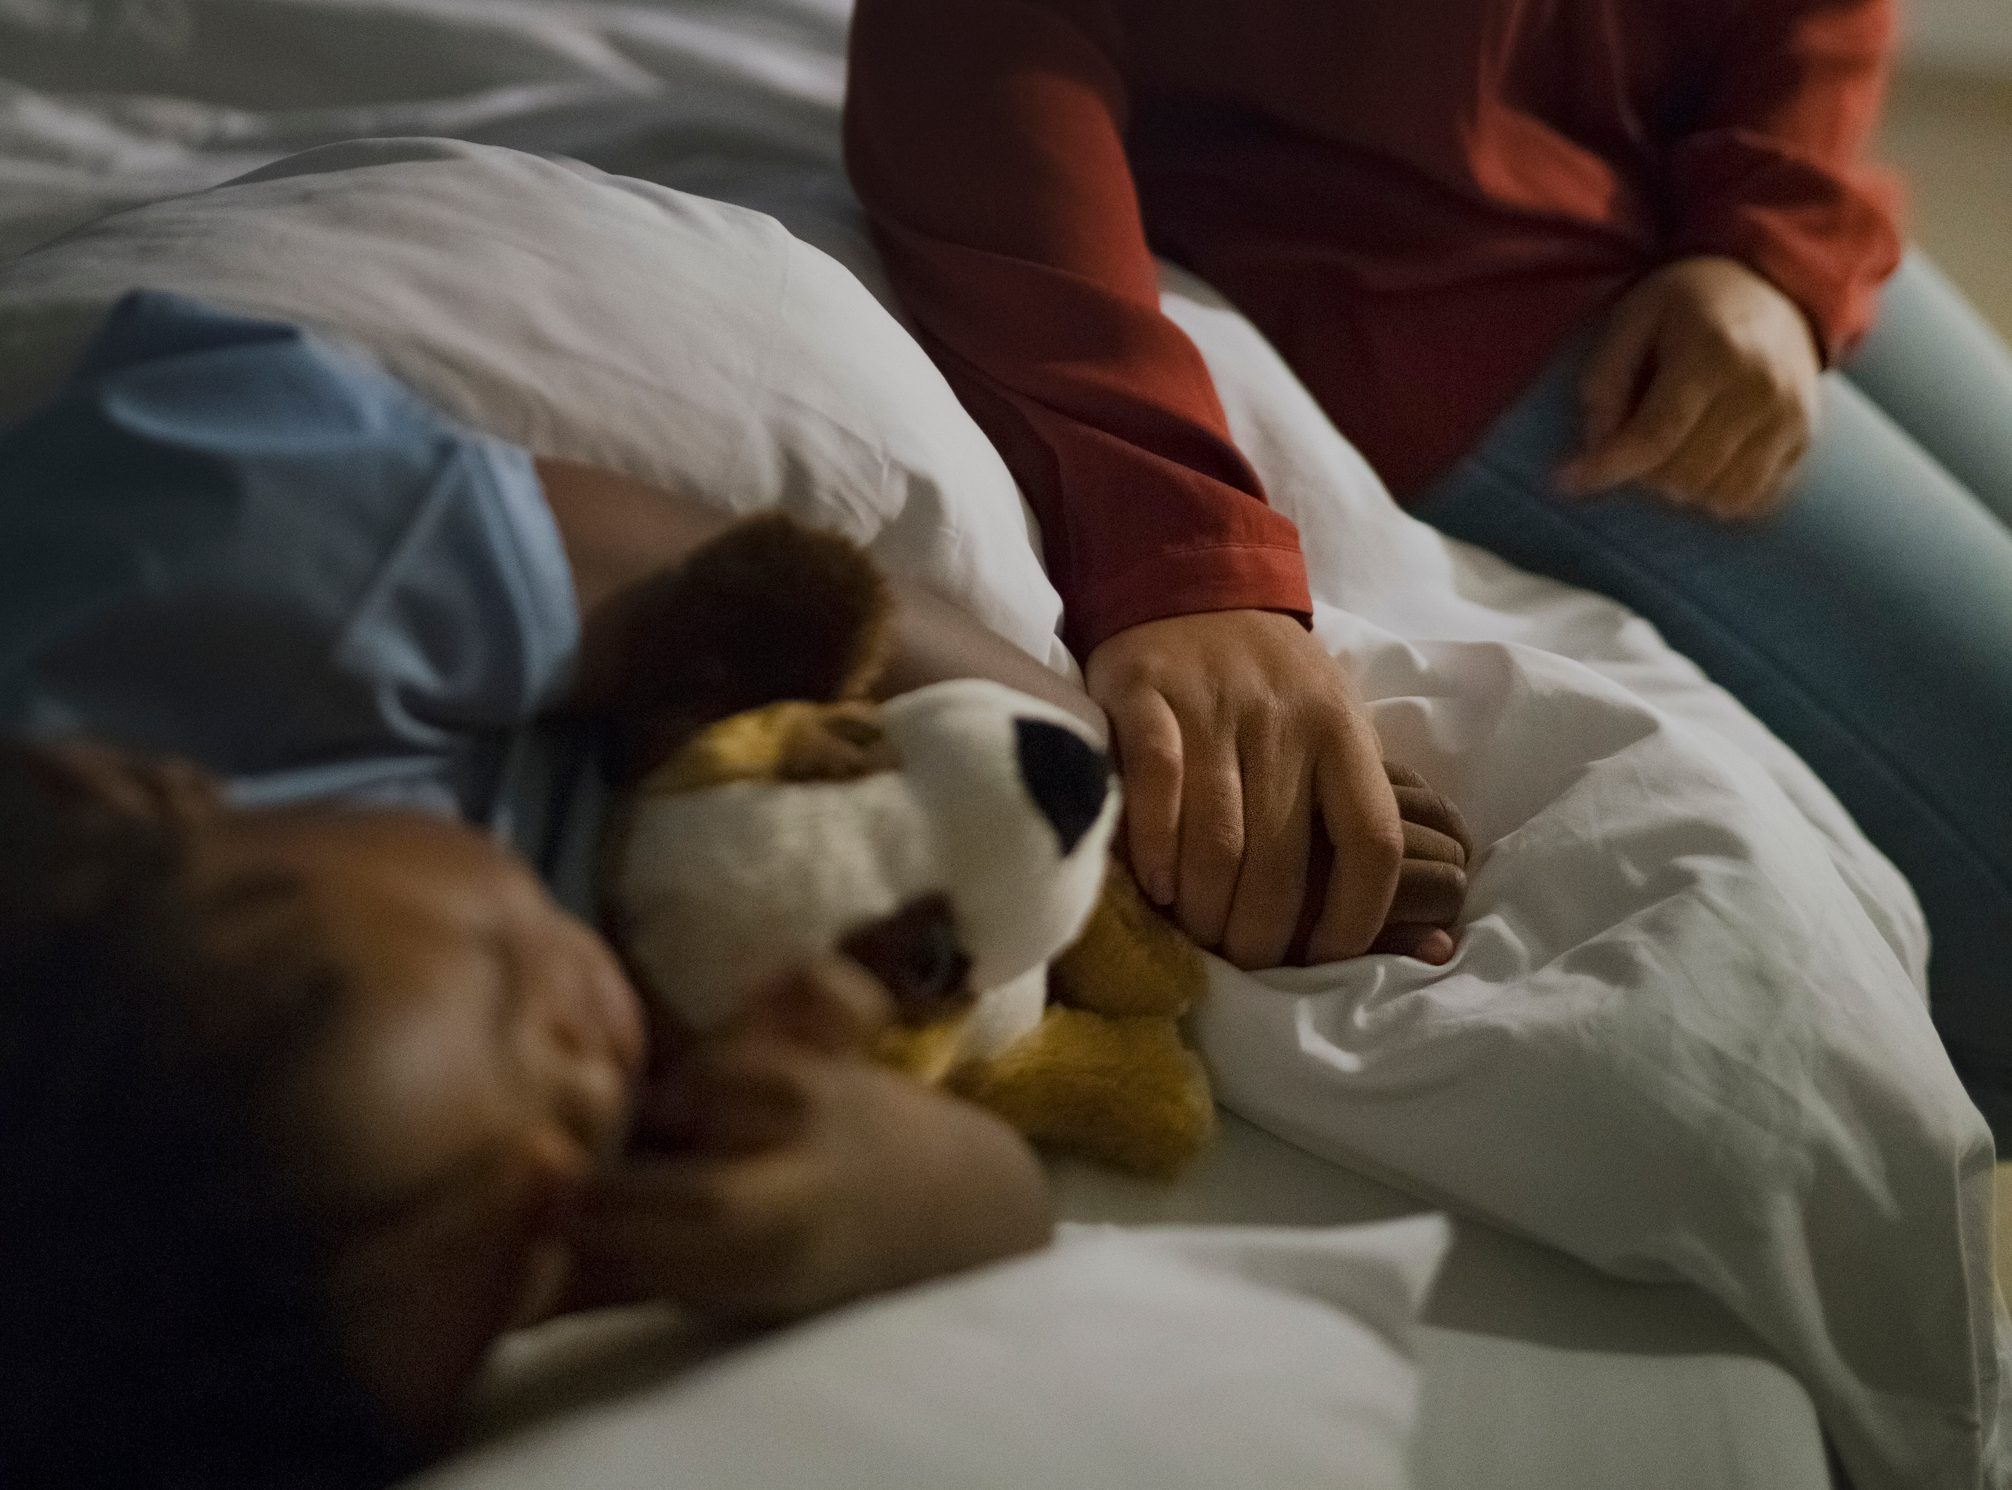 mother holding son's hand in hospital bed